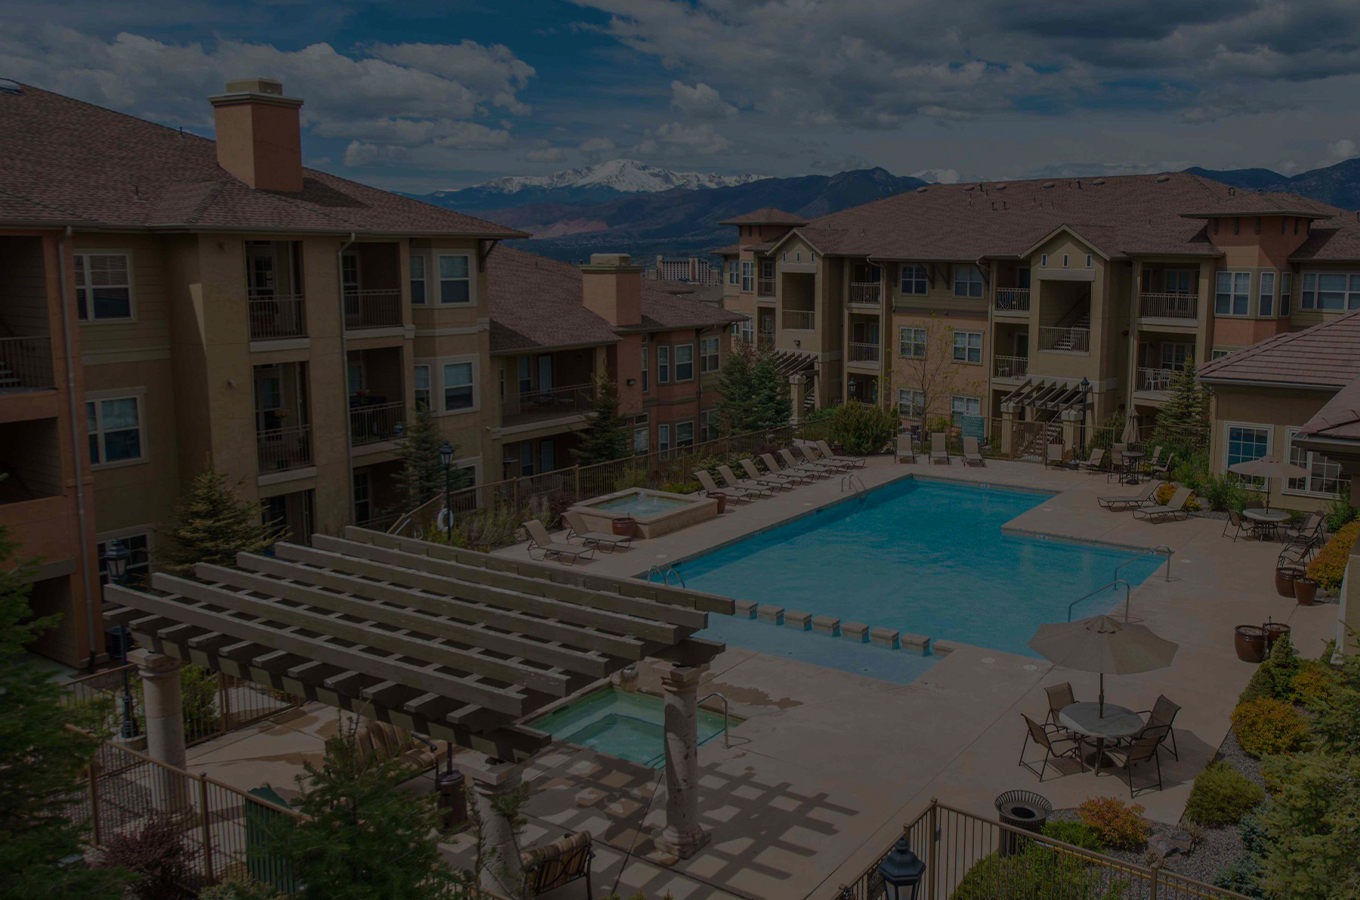 Apartment community pool – dark overlay on photo